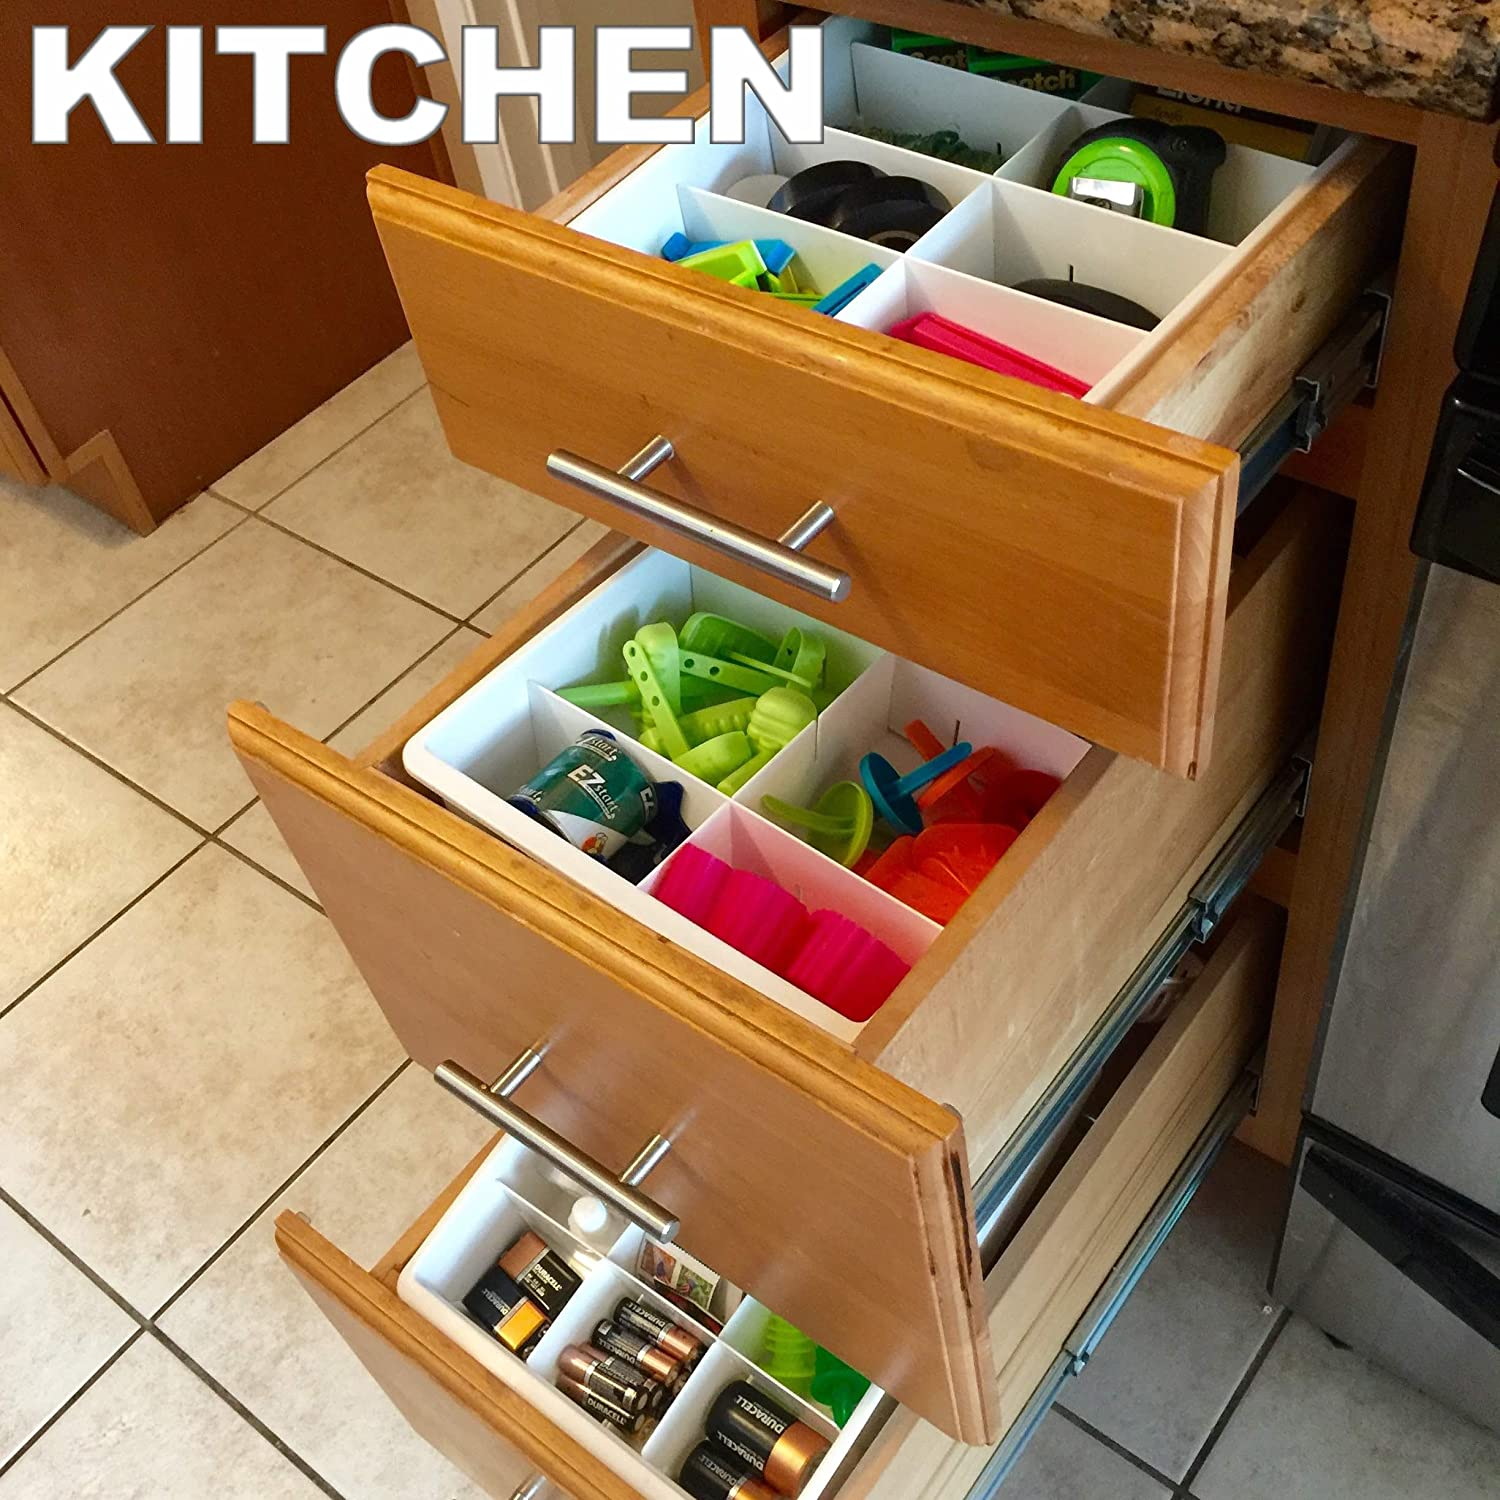 kitchen office organization. Amazon.com: Adjustable Drawer Dividers For Utility \u0026 Junk Kitchen And Office Storage Organization By Uncluttered Designs (1 Pack): Dining